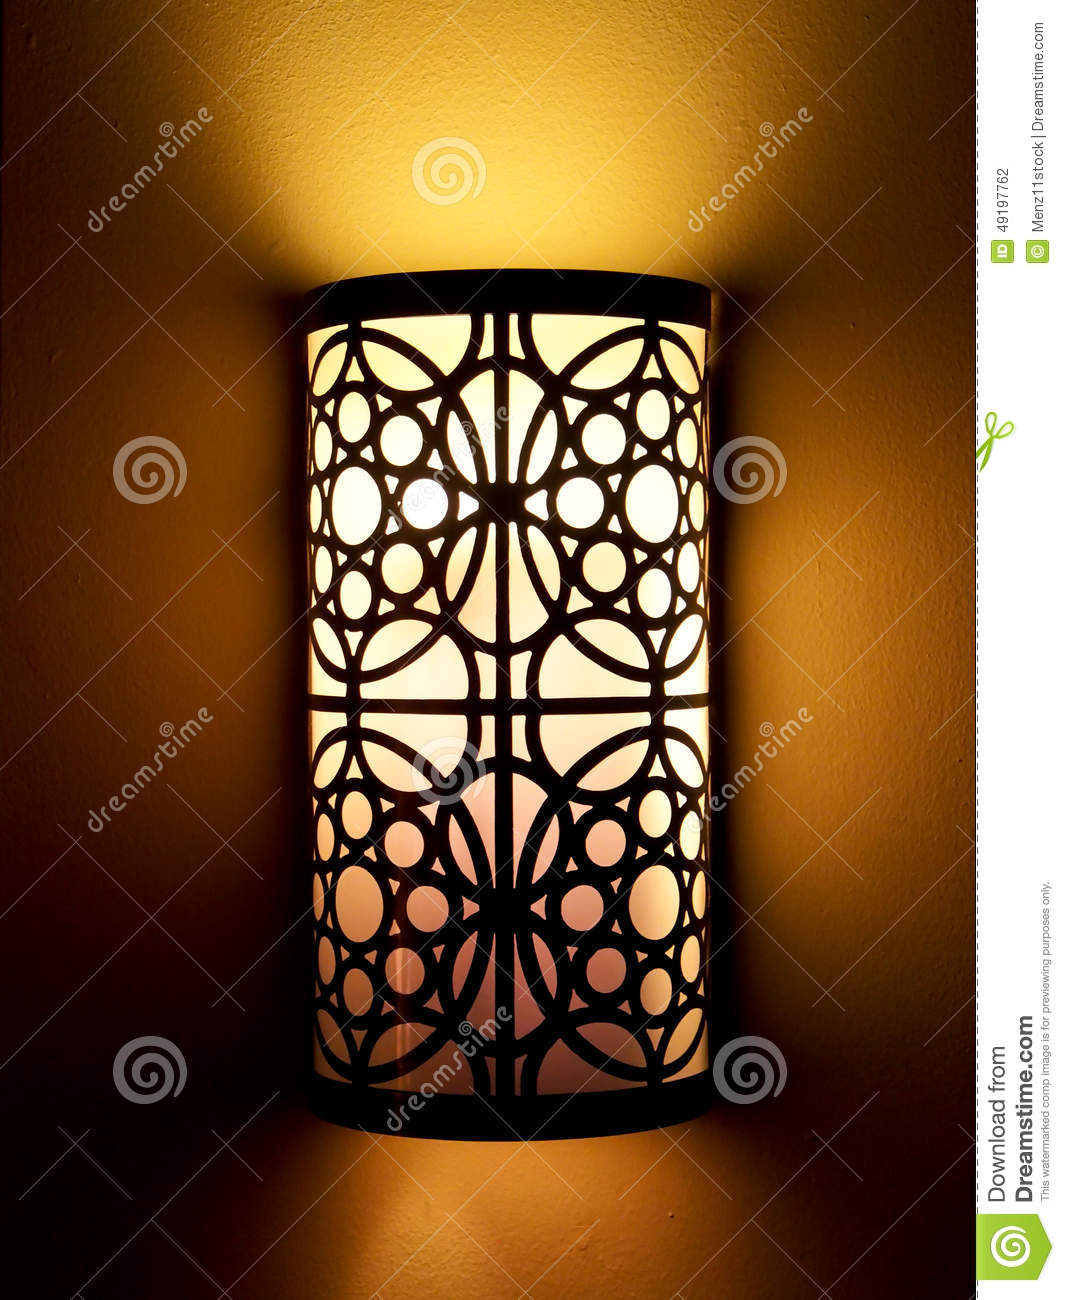 Warm Light Lamp Shade On Wall In Dark Stock Photo - Image of relax ...